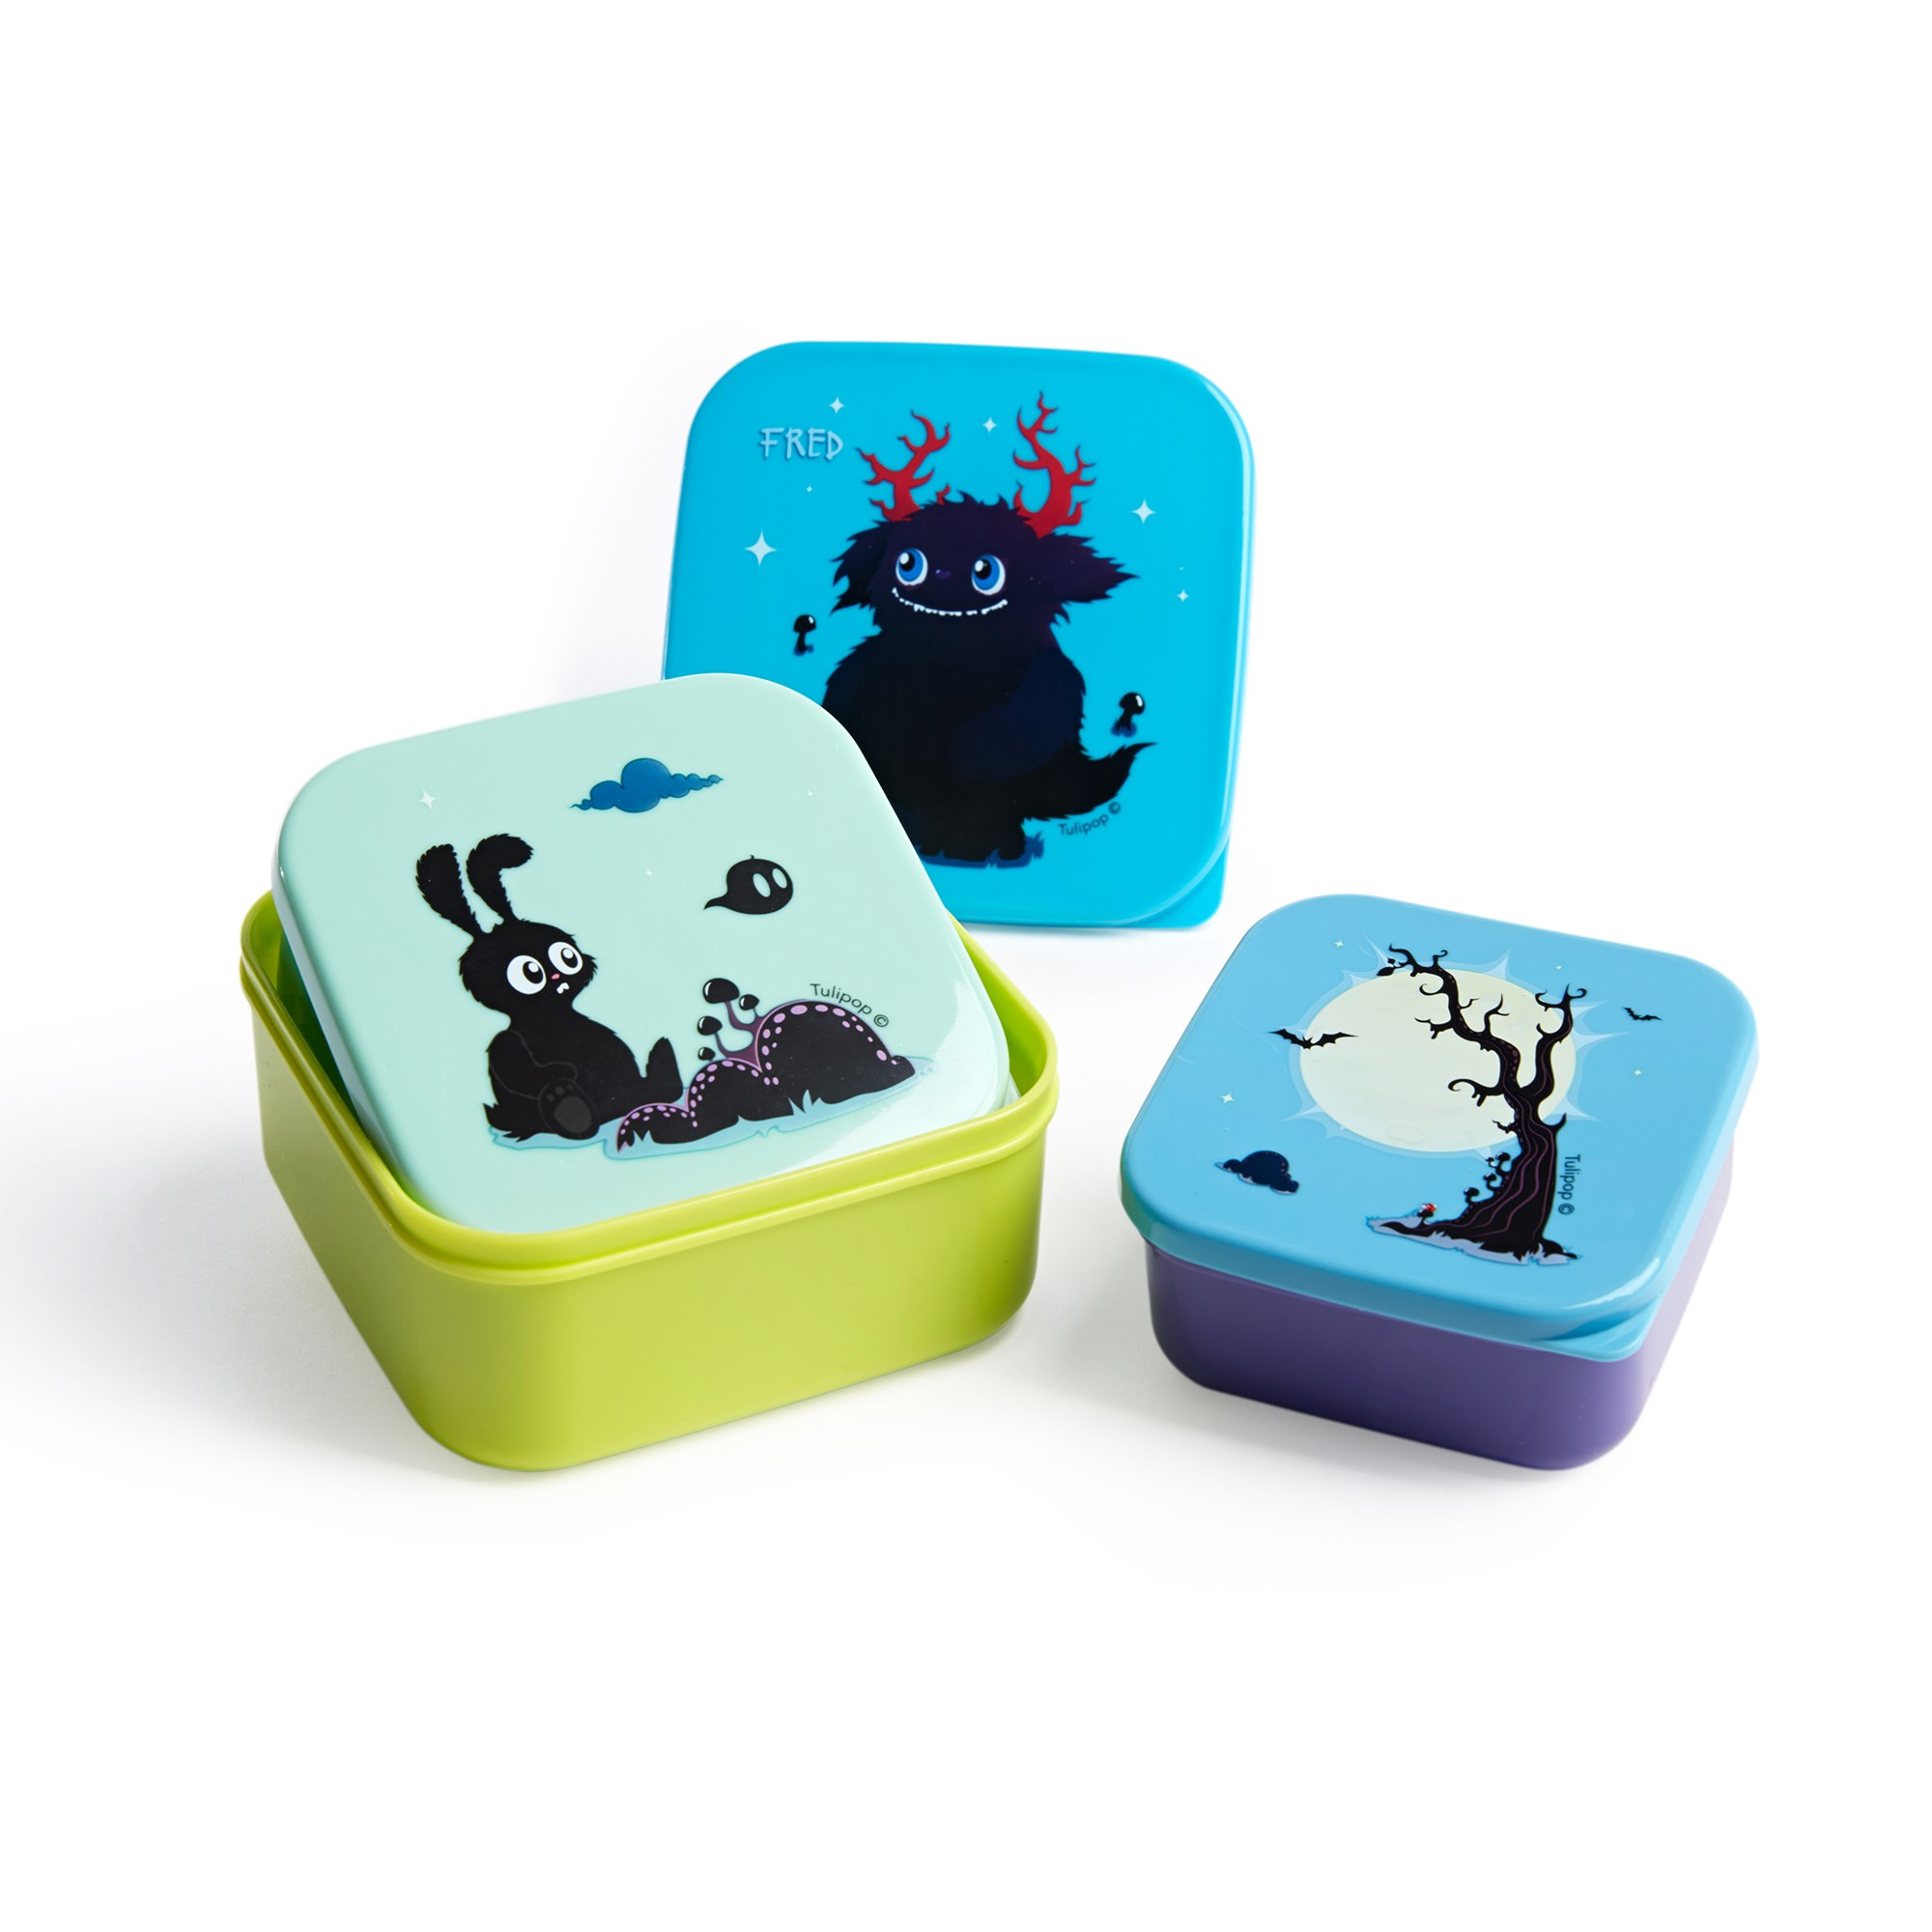 Fred lunch box set